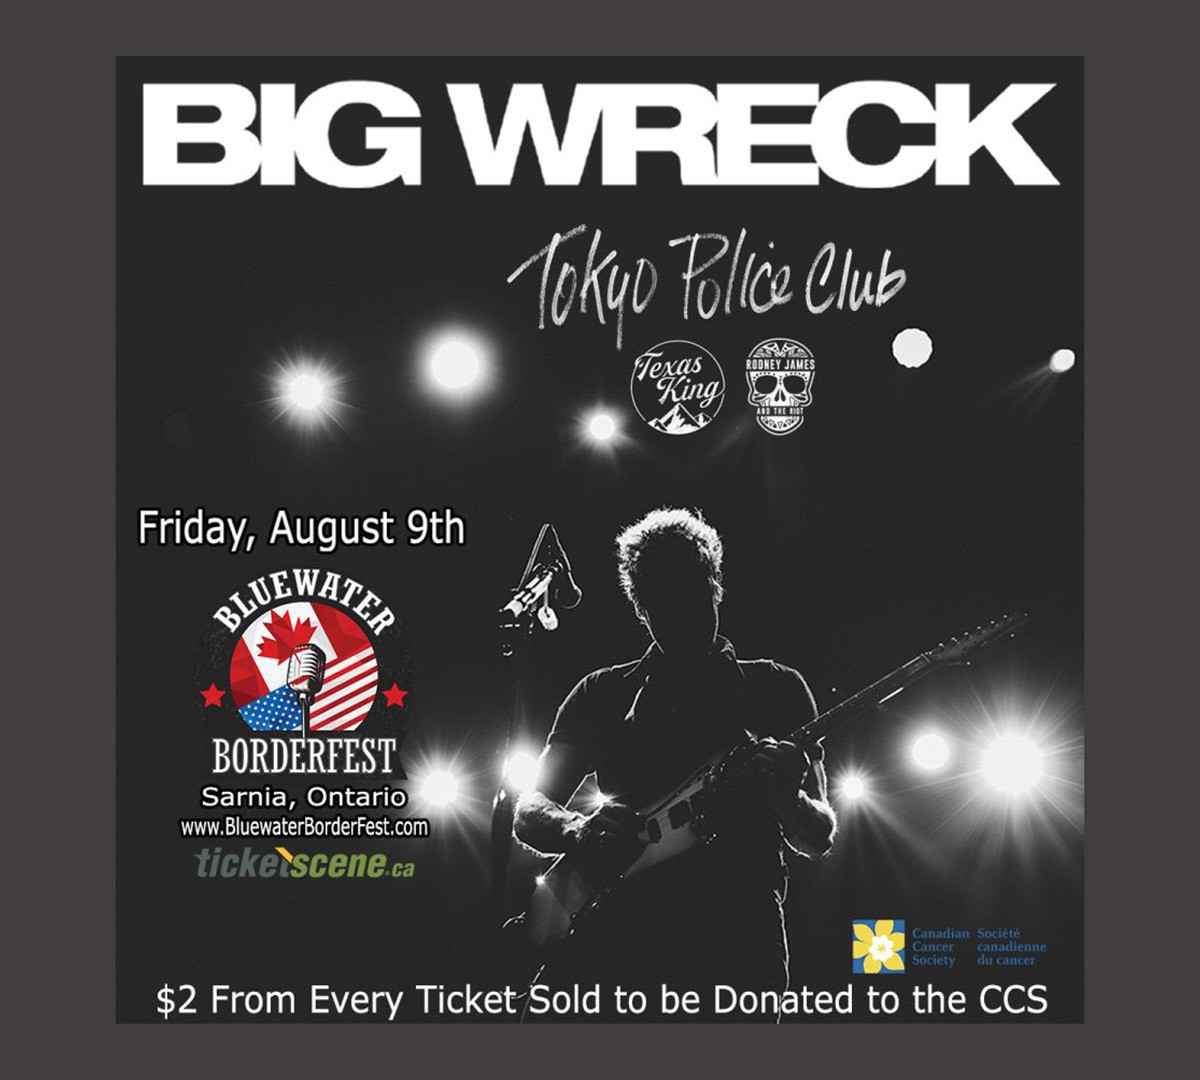 Big Wreck to Honour Brian Doherty with Performance at Blue Water Border Festival in Sarnia